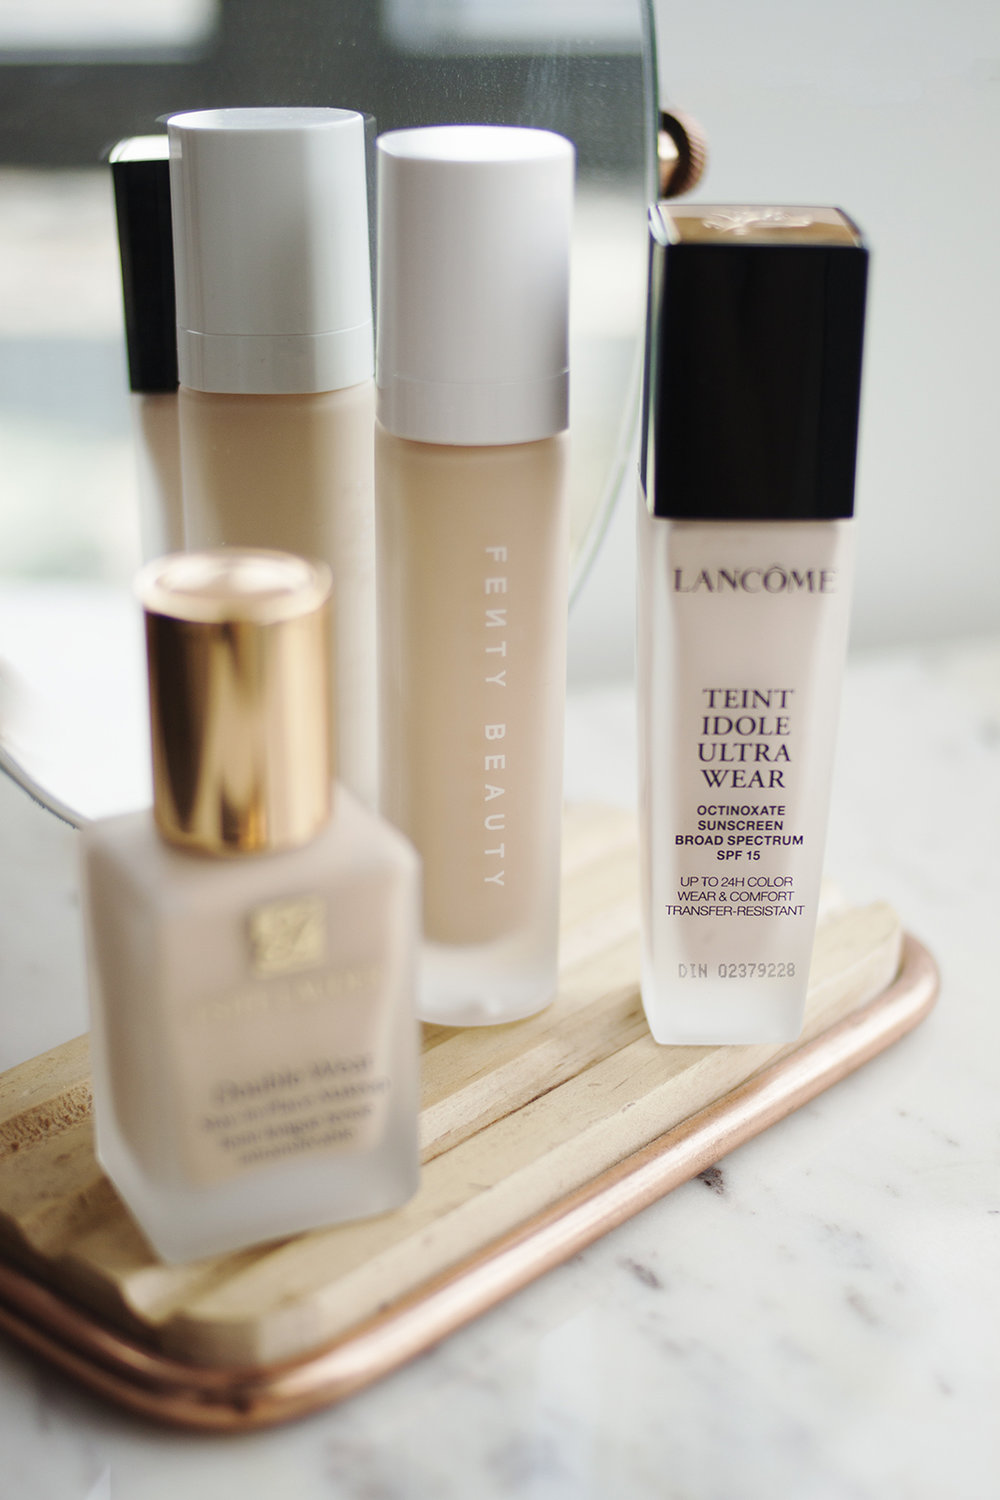 - I'm not sure how long the Lancome Tient Idole Ultra Wear Foundation (AU) has been around, but I do know that I was late to the party. I feel like this foundation really doesn't get much buzz online, but the formula is great for oily skin. It has a thin cream texture and medium coverage that I imagine could be built up if that's what you wanted to do.I find that it's barely detectable on the skin, and it lasts impressively throughout the day. Basically, it's just what I'm looking for in a foundation, and if you want a slightly more lightweight version of the original Double Wear, this is it.It also has a really impressive shade range. I'm typically the lightest shade in any foundation with a neutral/yellow undertone, and this is a bit too fair for me! I bought the shade 090 Ivoire which is the fairest neutral shade, but I probably should have gone with shade 100, which also has a neutral undertone. I can definitely make this work though, and it's really a product that deserves a lot more attention that it seems to get.